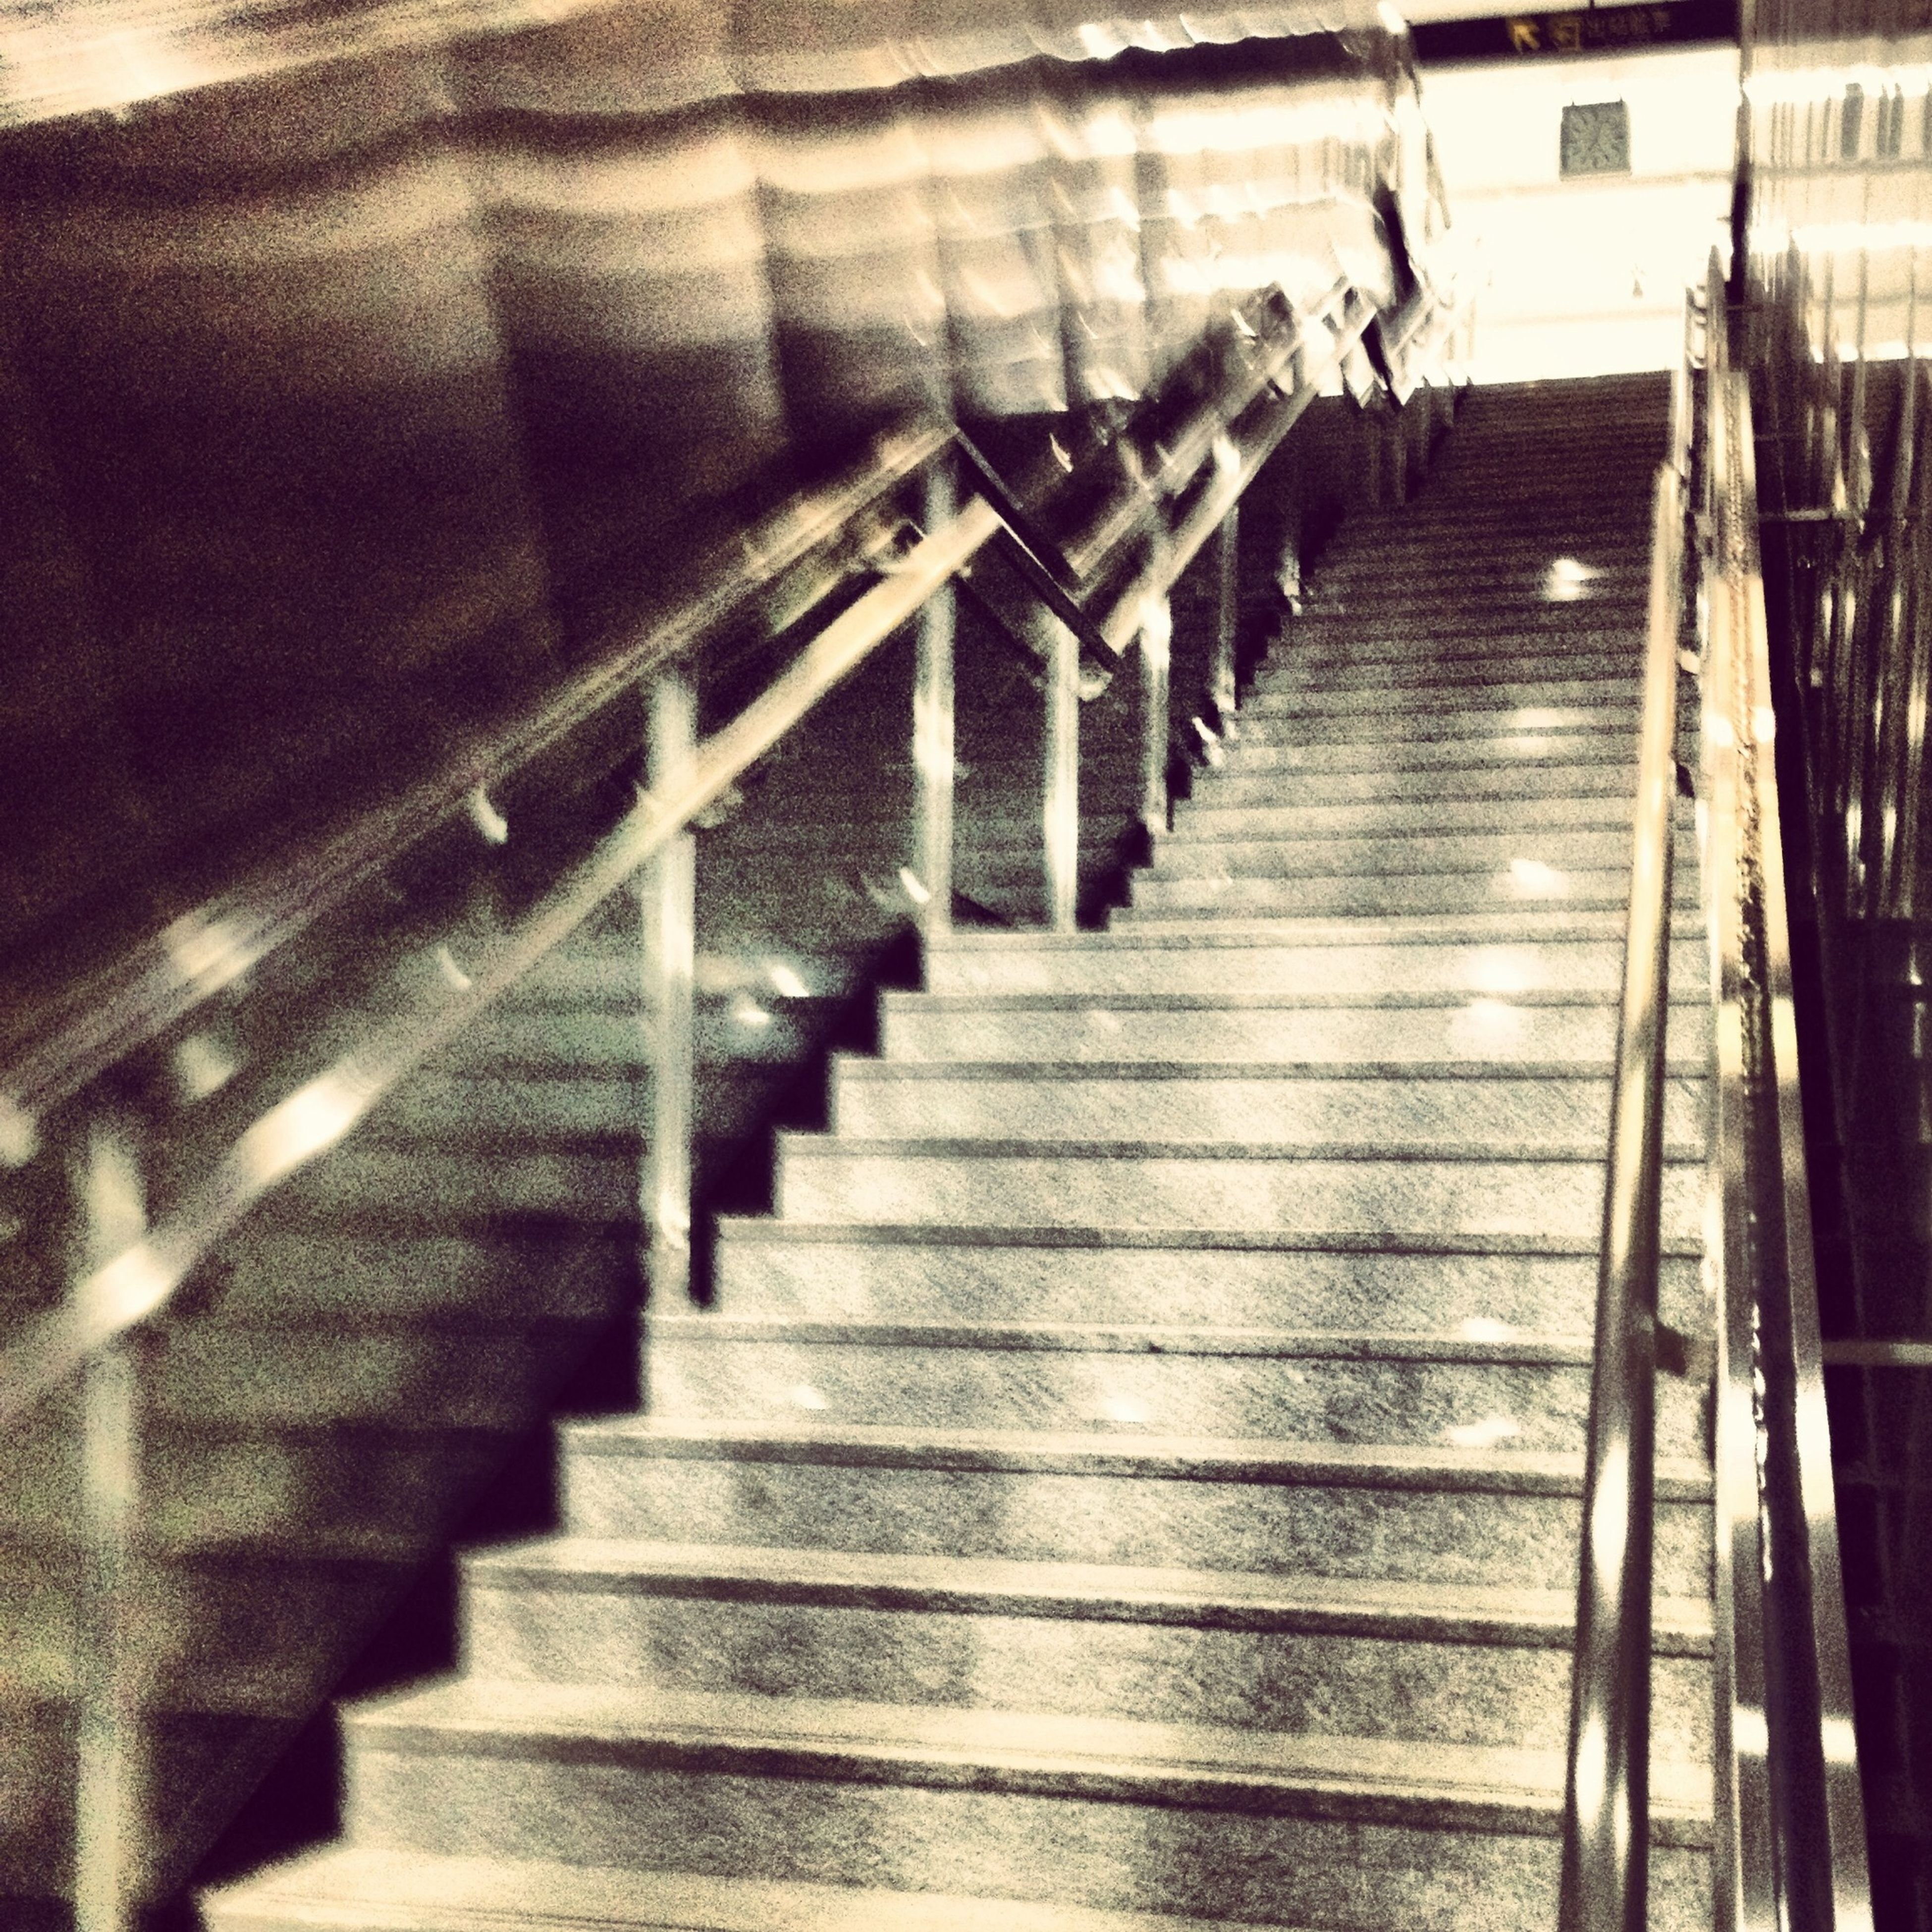 steps and staircases, steps, staircase, railing, the way forward, indoors, high angle view, diminishing perspective, stairs, built structure, moving up, architecture, vanishing point, low angle view, escalator, in a row, metal, narrow, no people, wood - material